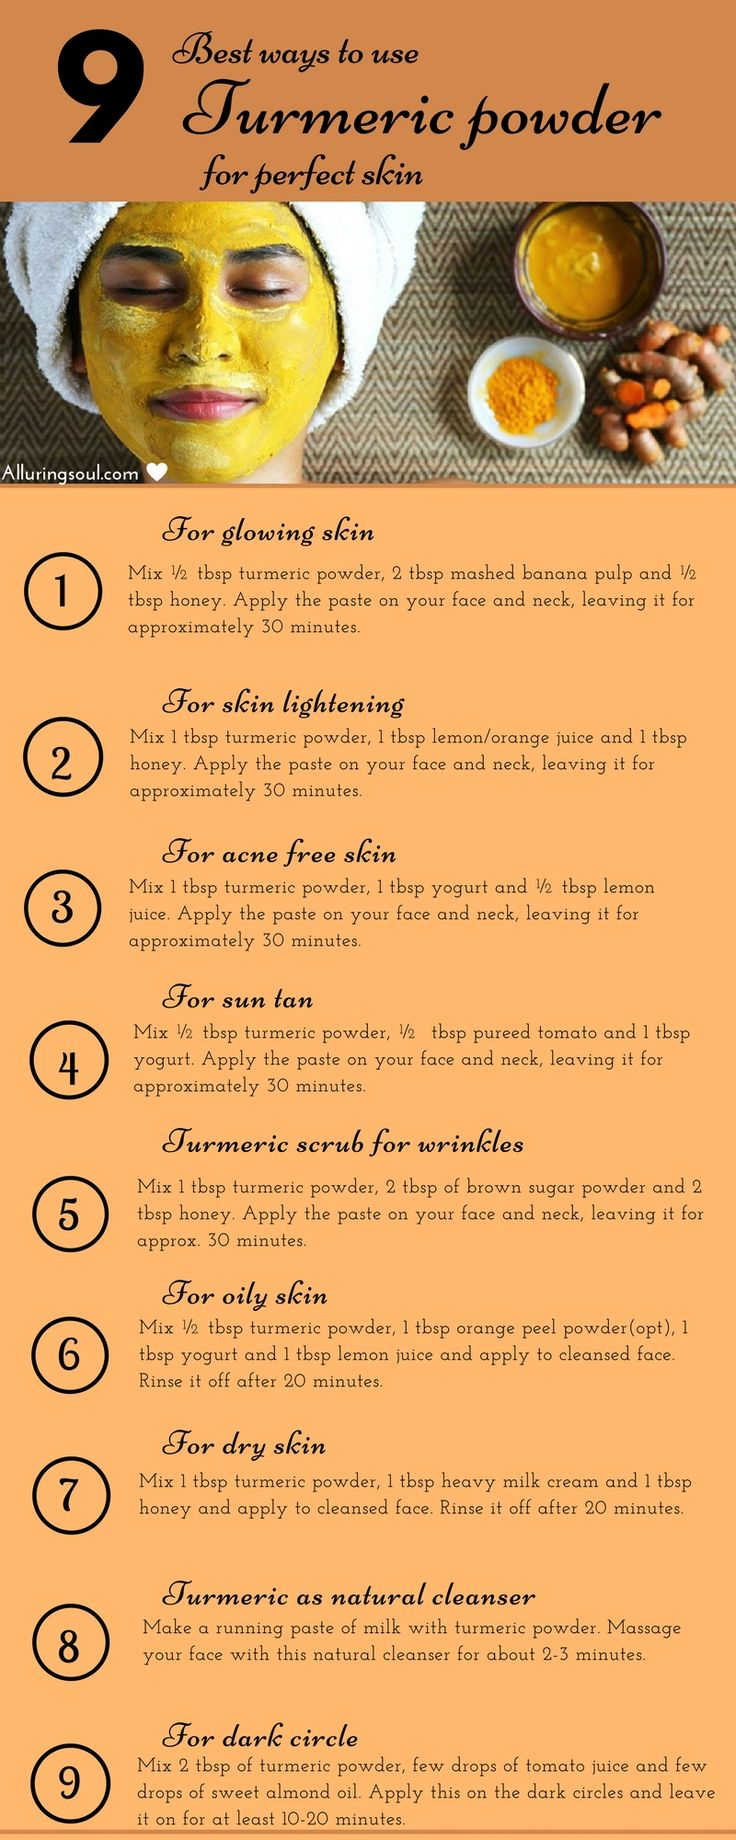 25+ best ideas about Turmeric Face Mask on Pinterest ...